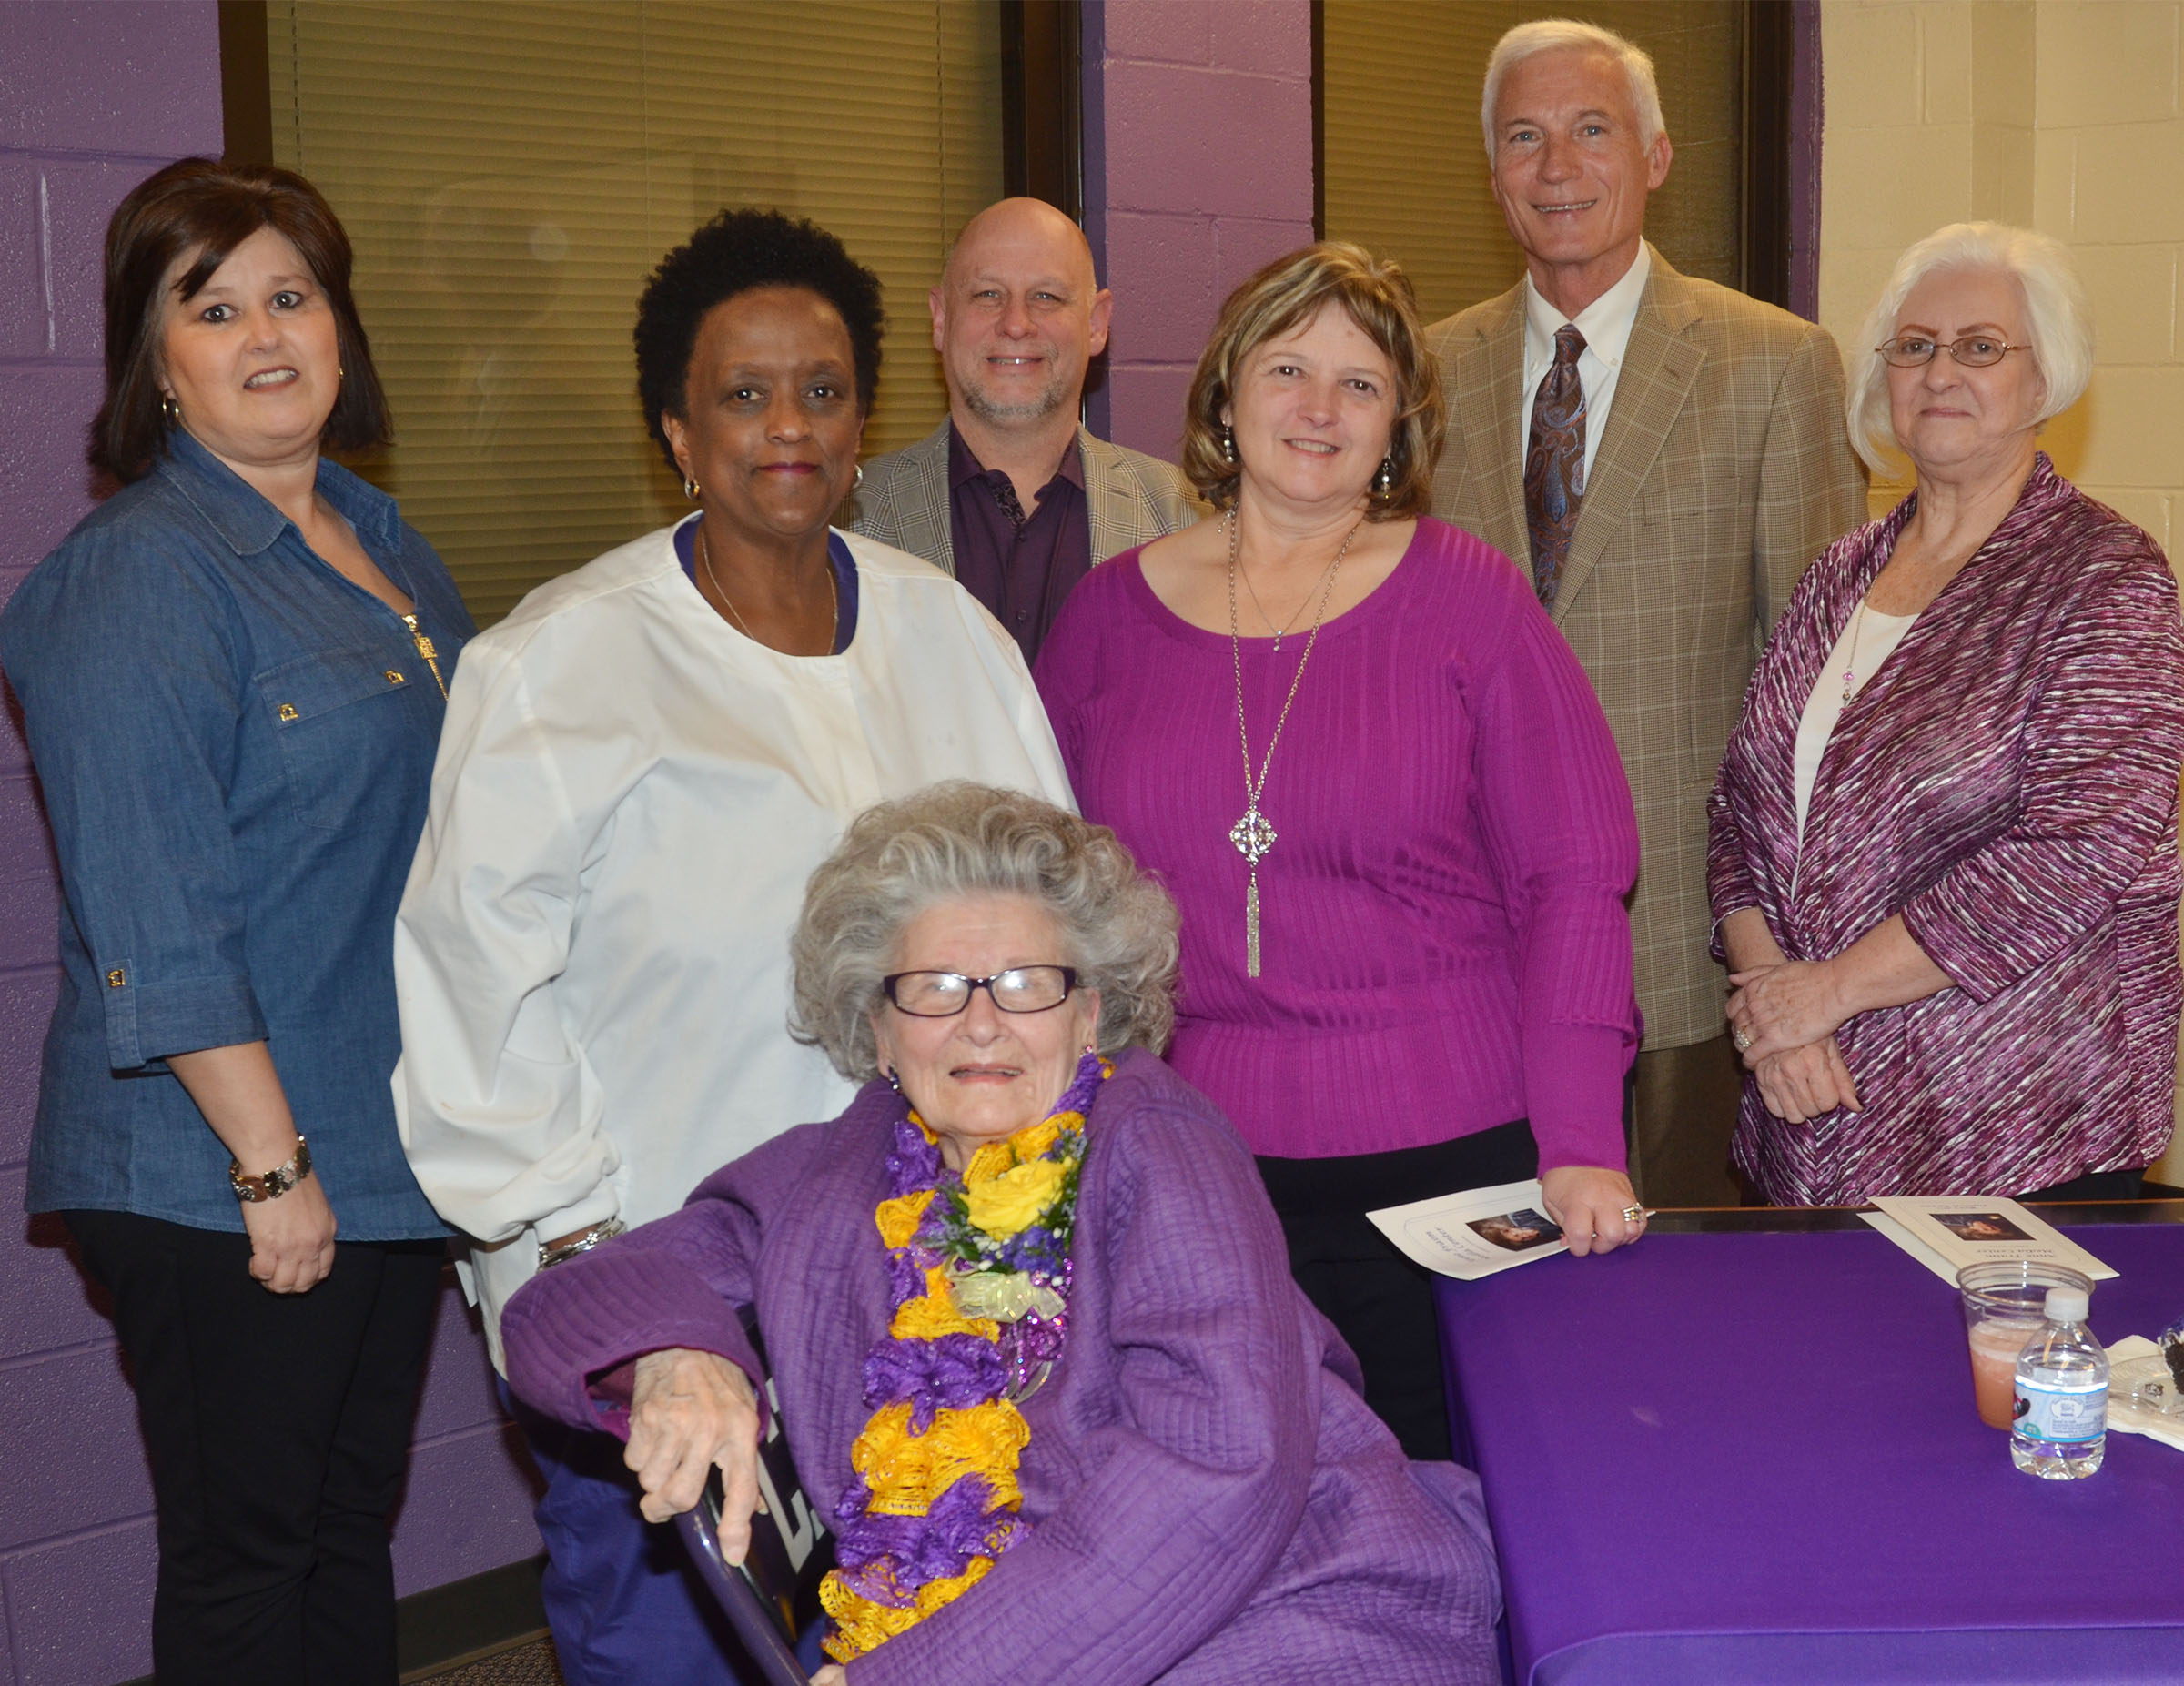 Former CHS employee Anne Fraim takes a photo with Campbellsville Board of Education members at the dedication of the Anne Fraim Media Center. From left, back, are Board members Suzanne Wilson and Barkley Taylor, Vice Chair Mitch Overstreet, Board member Angie Johnson, Superintendent Mike Deaton and Board Chair Pat Hall.